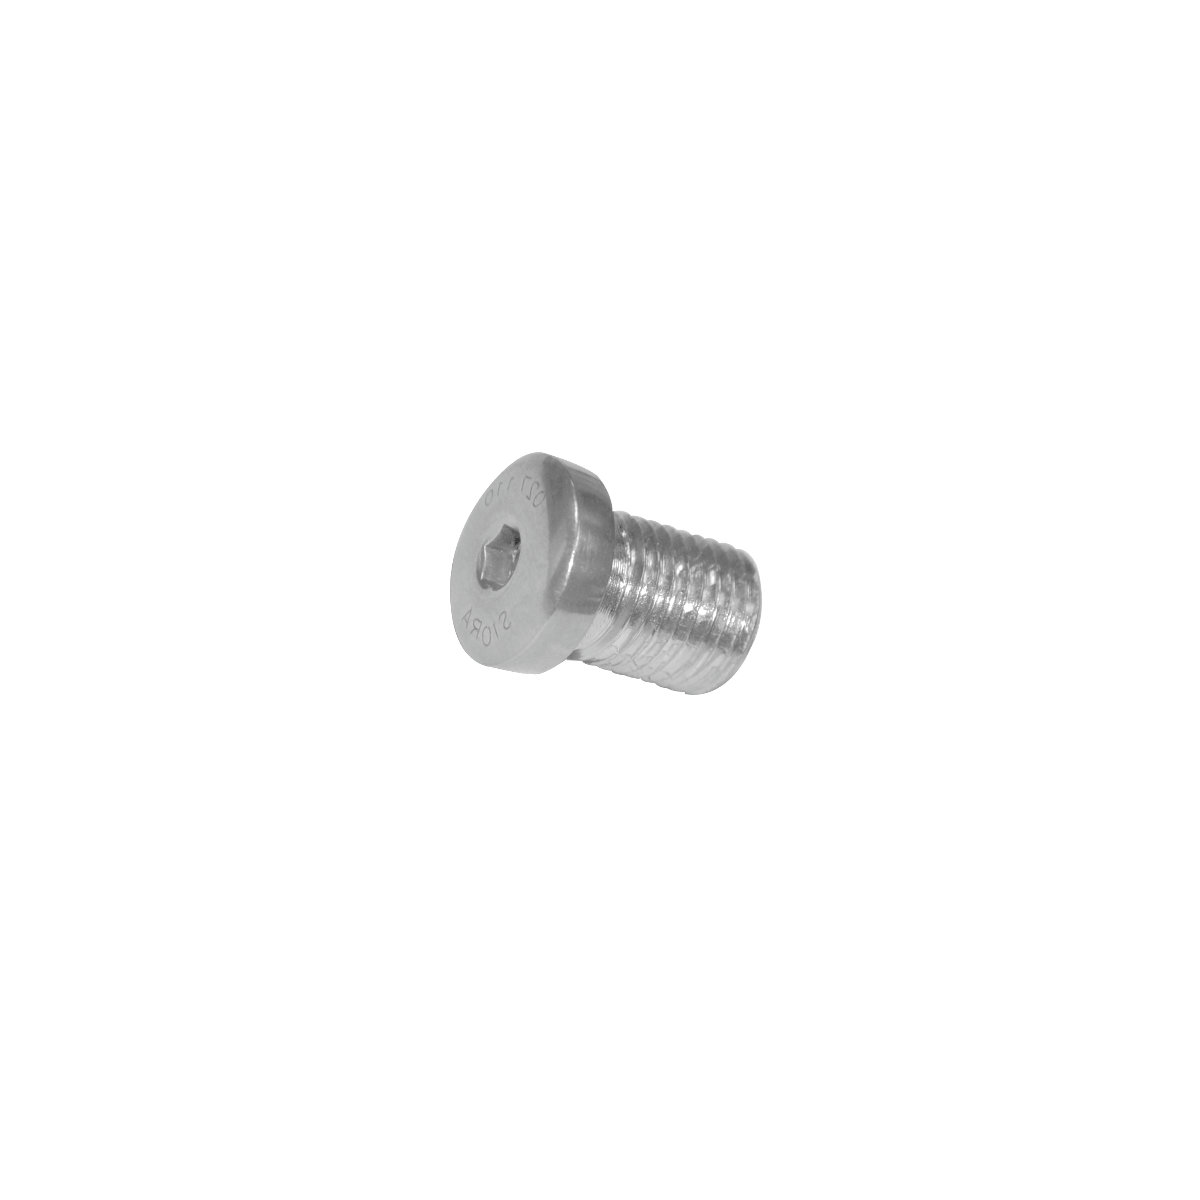 End Cap for Femoral Nail – S.S.